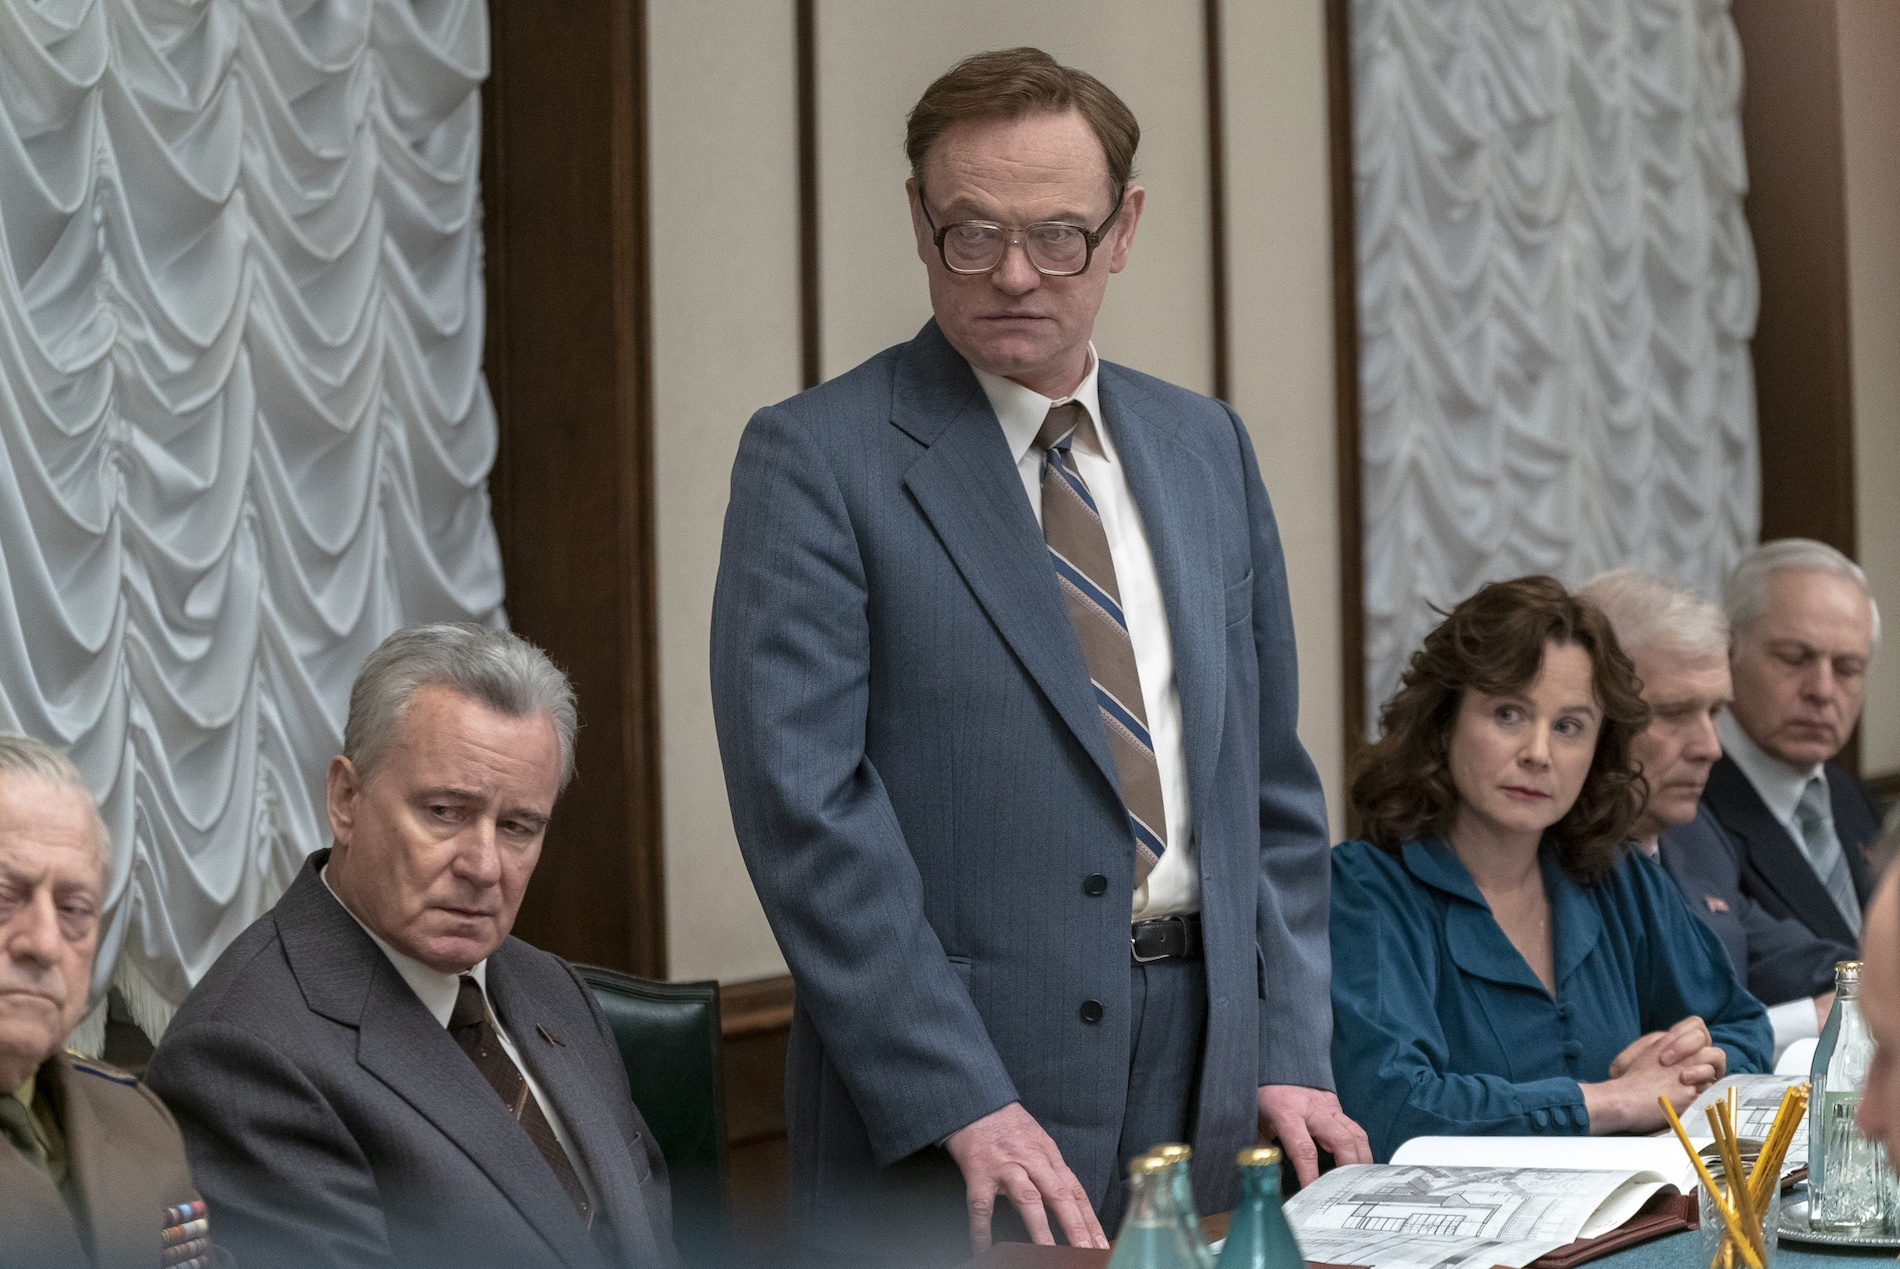 Why Craig Mazin Went From Writing 'The Hangover' Sequels to Creating HBO's 'Chernobyl'